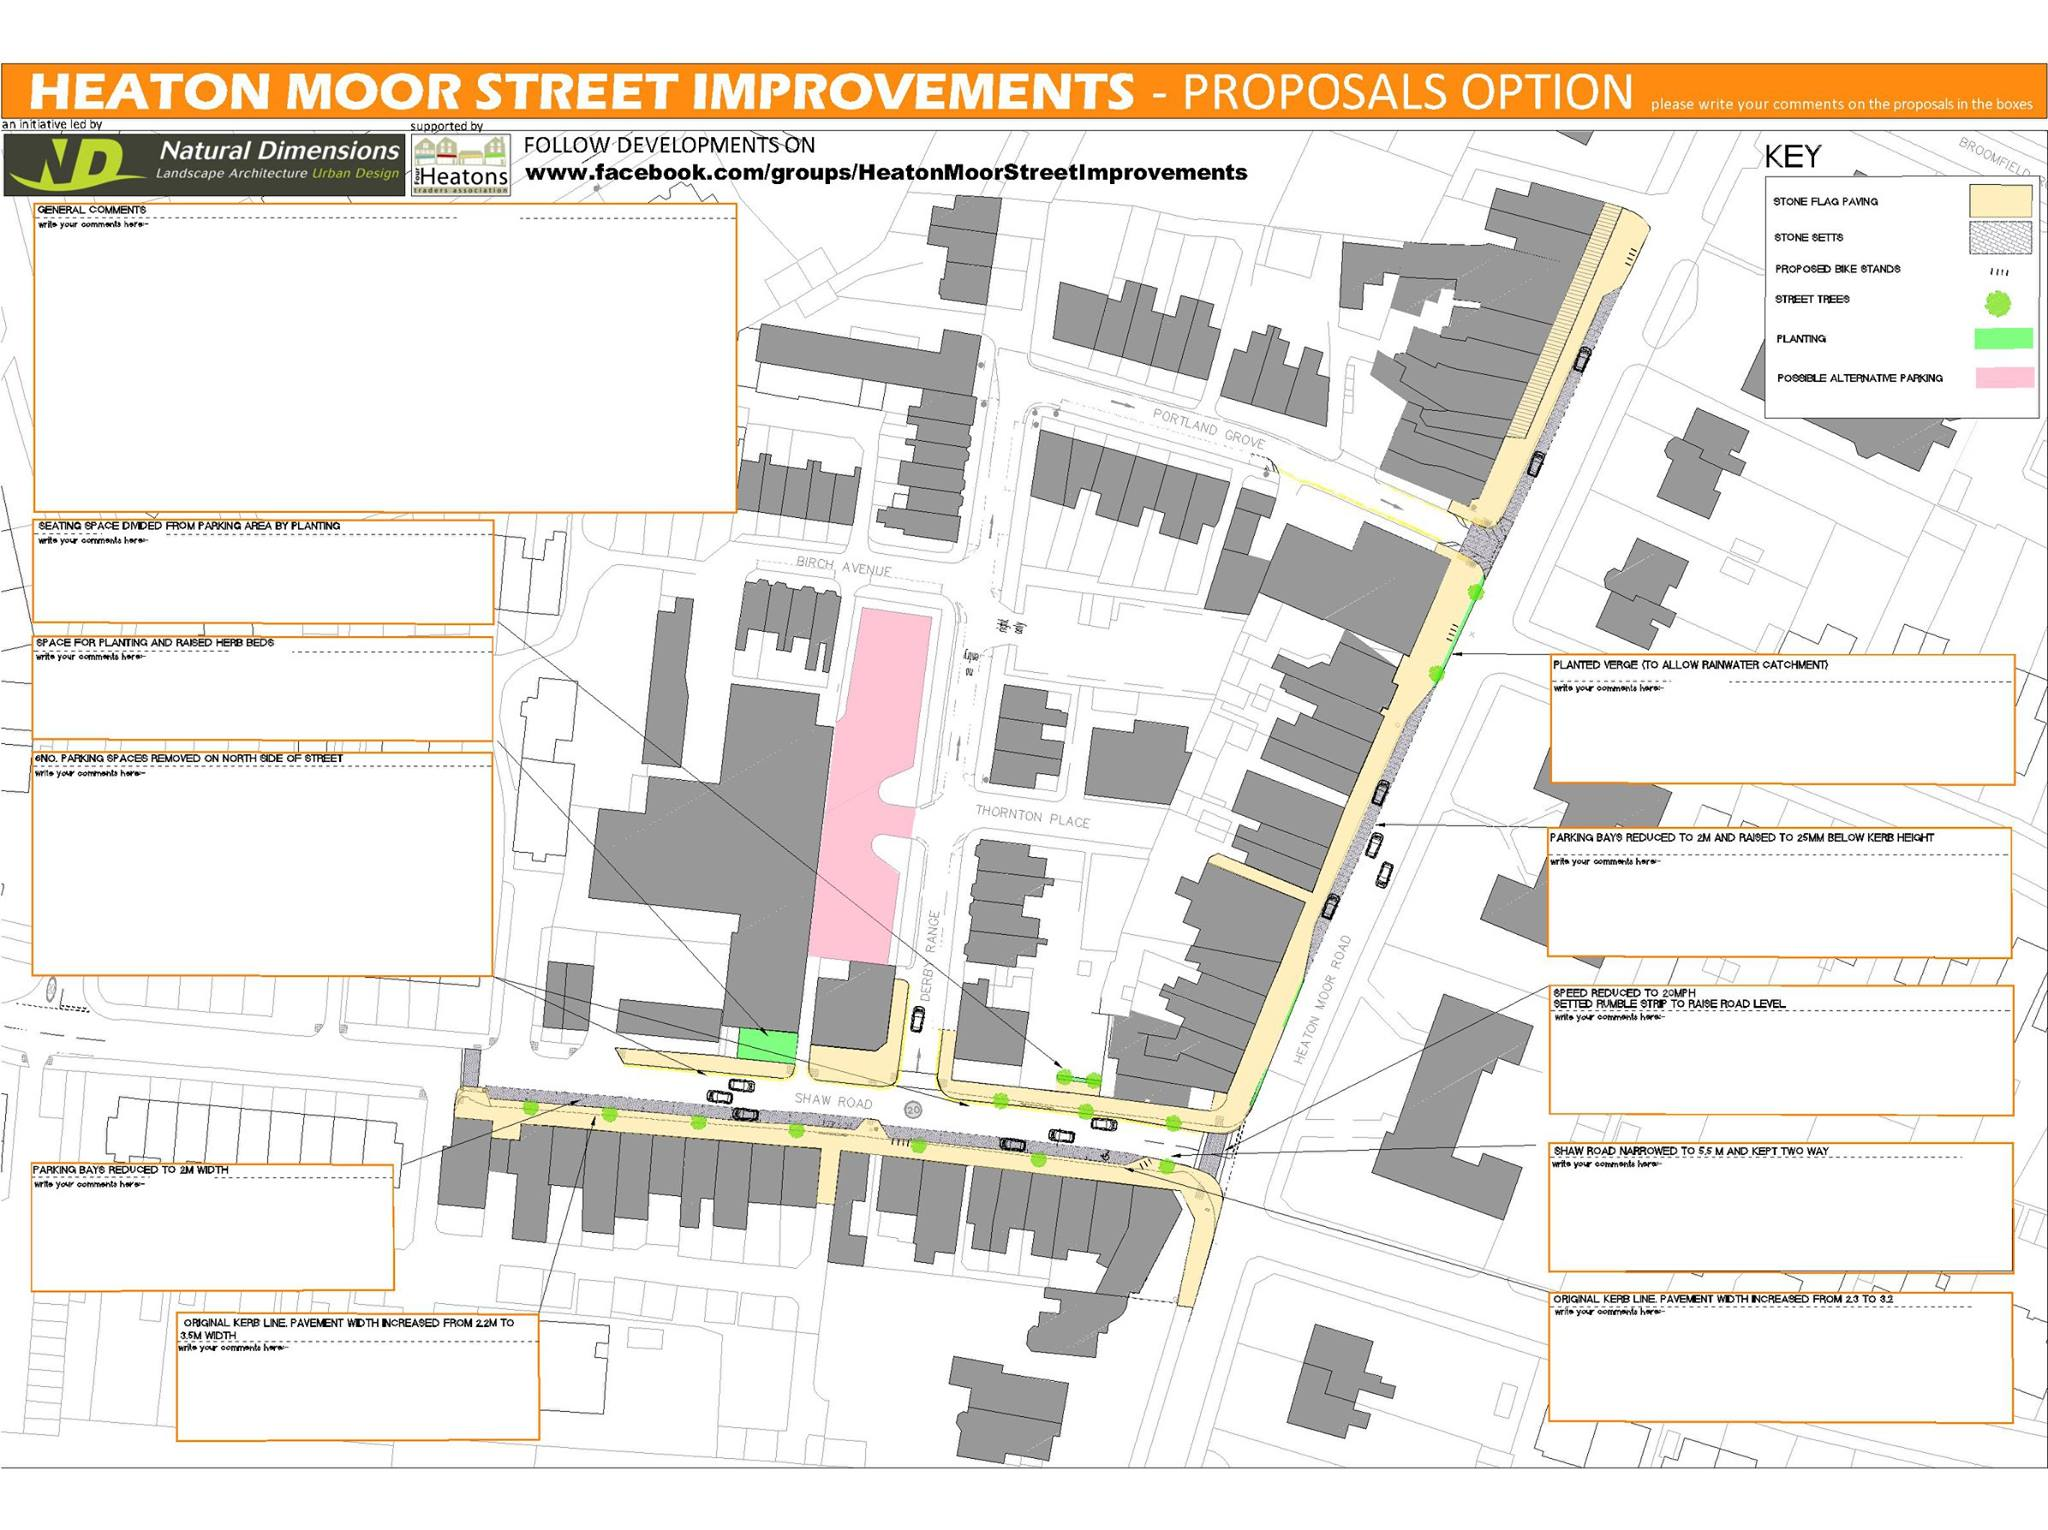 Heaton Moor Street Improvements: The Story